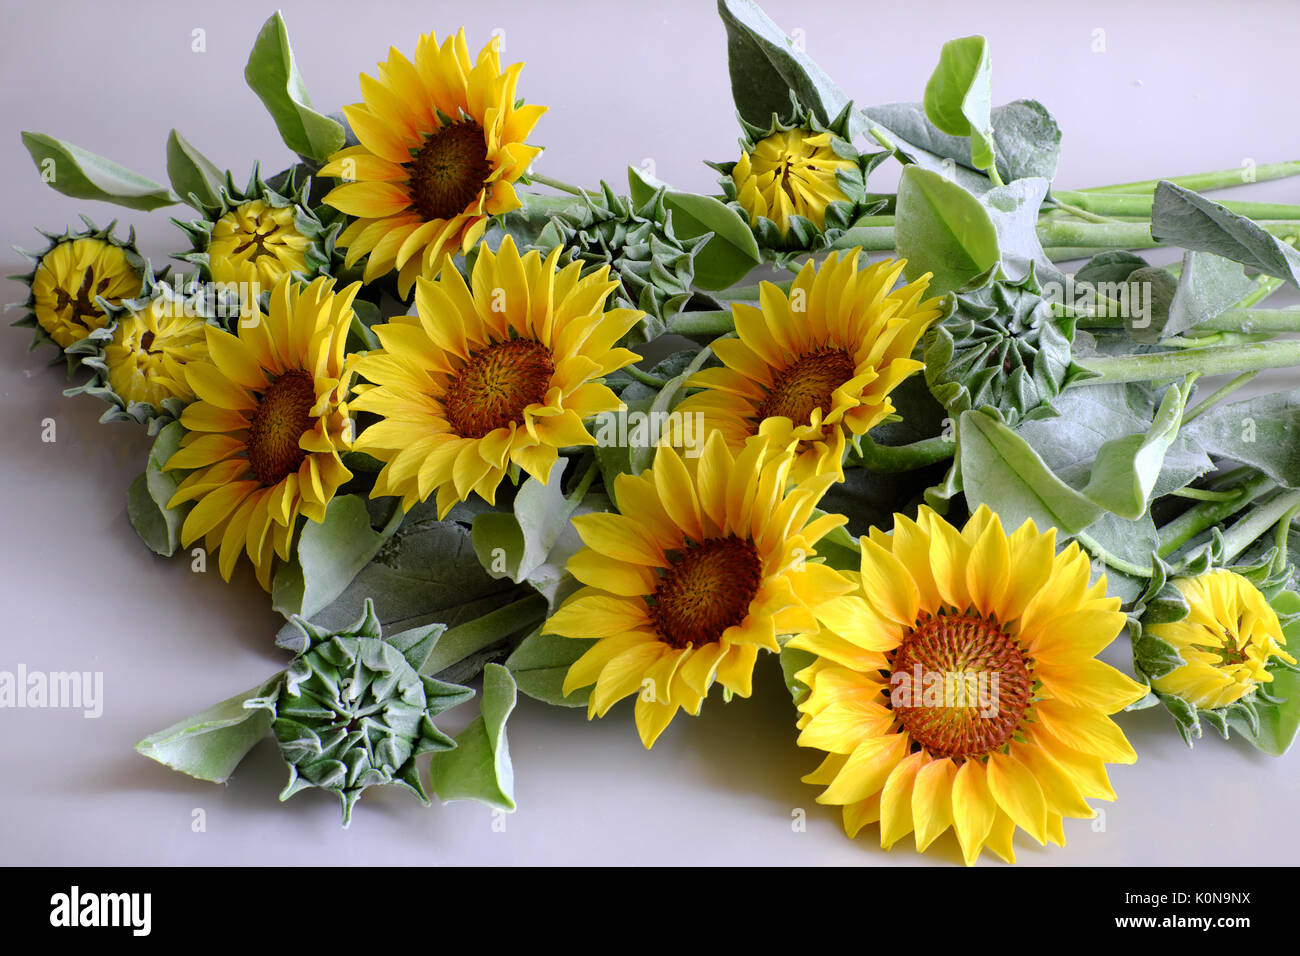 Amazing clay flower handmade product for home decor sunflower amazing clay flower handmade product for home decor sunflower bouquet bloom in yellow green leaf on white background beautiful artificial flower izmirmasajfo